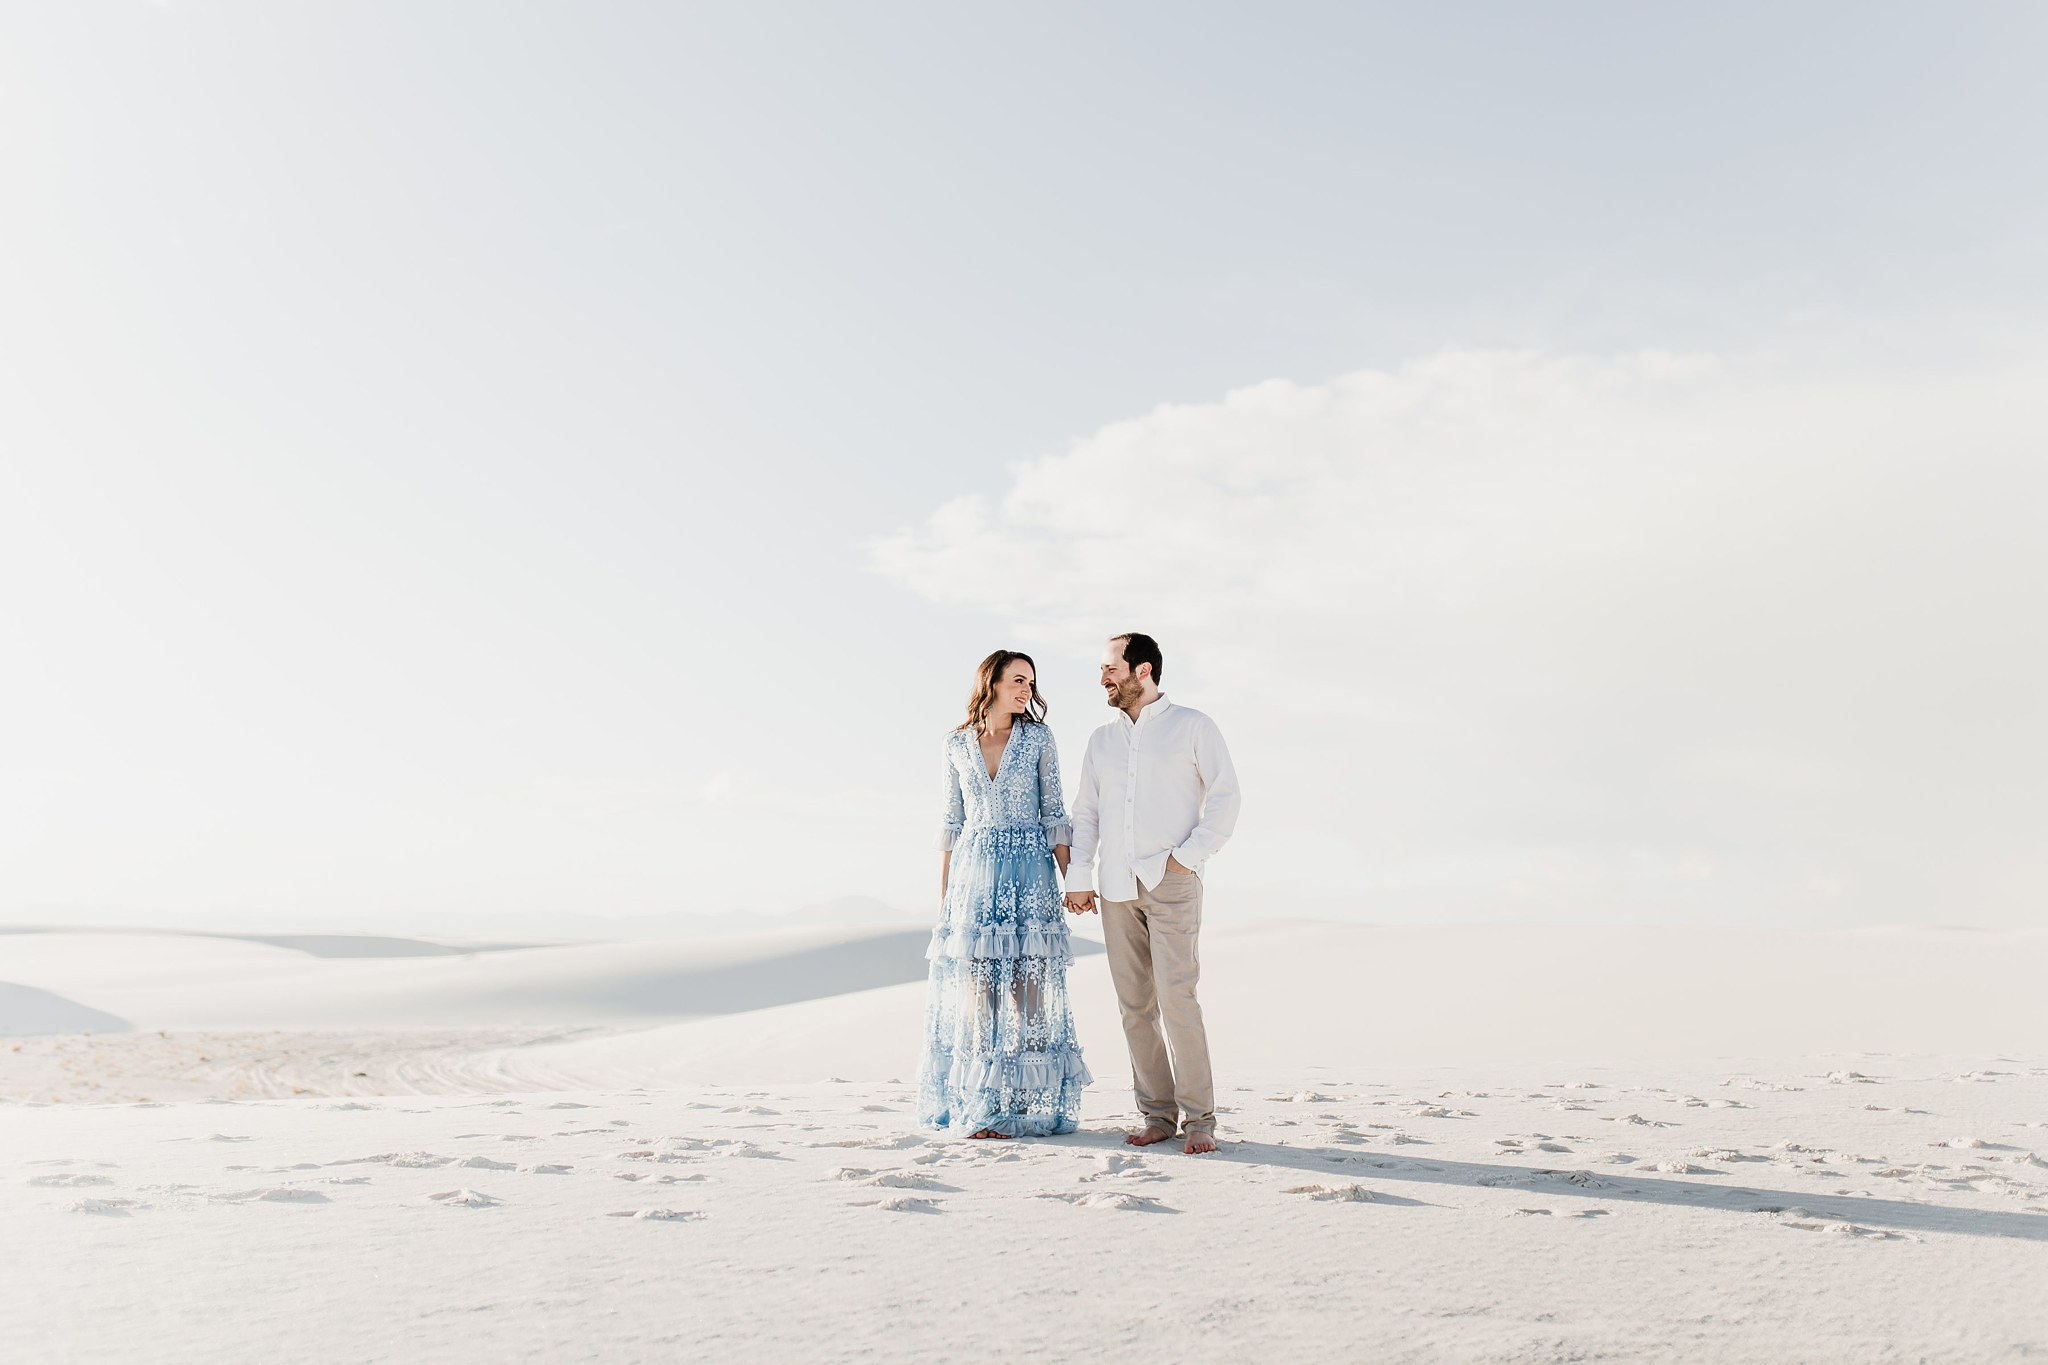 Alicia+lucia+photography+-+albuquerque+wedding+photographer+-+santa+fe+wedding+photography+-+new+mexico+wedding+photographer+-+new+mexico+wedding+-+new+mexico+engagement+-+white+sands+engagement+-+white+sands+national+monument_0020.jpg